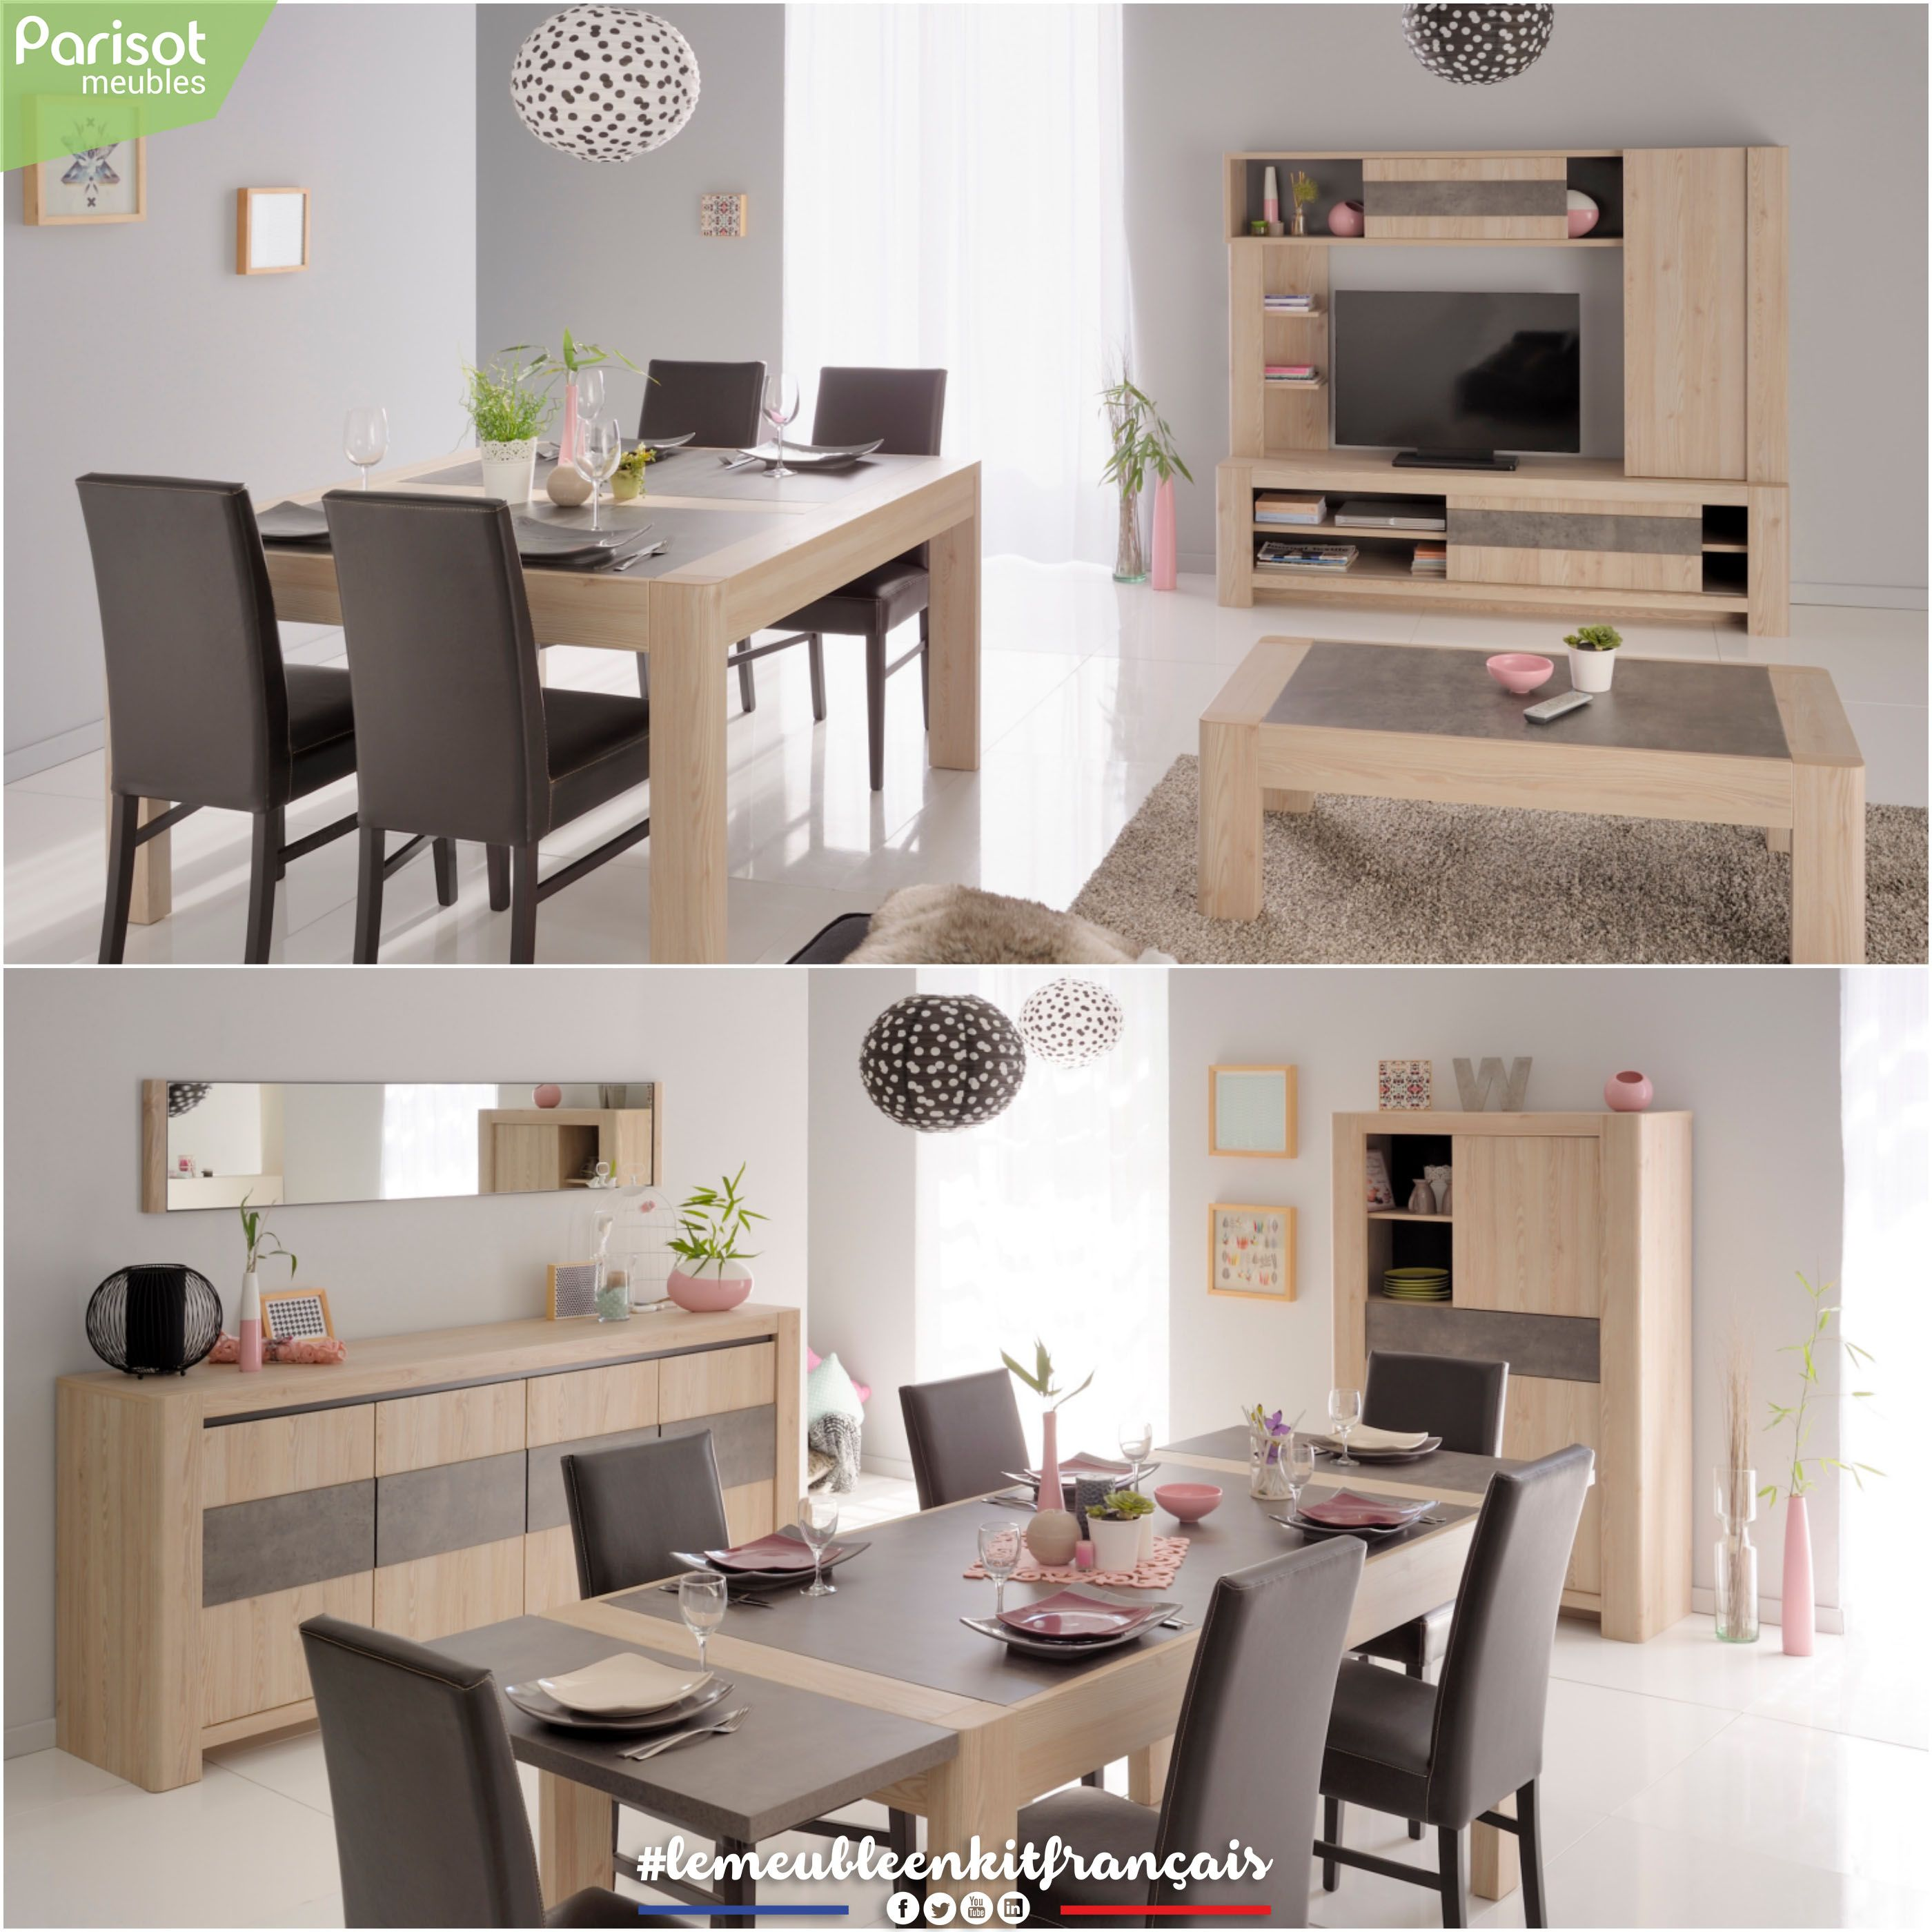 Chris By Parisot Meubles Chris A Living Room Furniture With An Industrial Contemporary Style Rounded Shapes Living Room Furniture Furniture Bedroom Decor